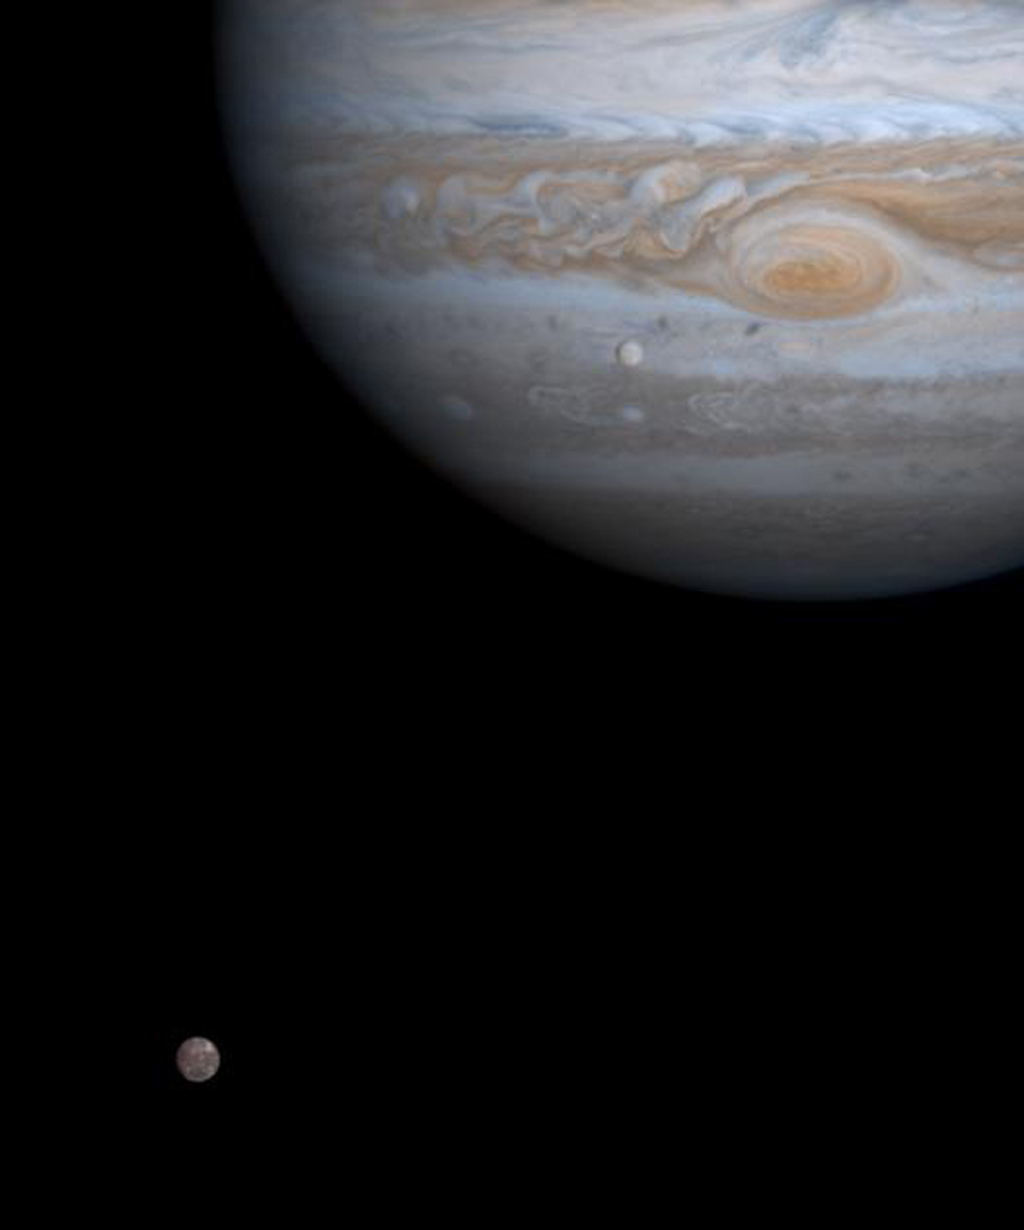 One moment in an ancient, orbital dance is caught in this color picture taken by NASA's Cassini spacecraft on Dec. 7, 2000, just as two of Jupiter's four major moons, Europa and Callisto, were nearly perfectly aligned with each other.